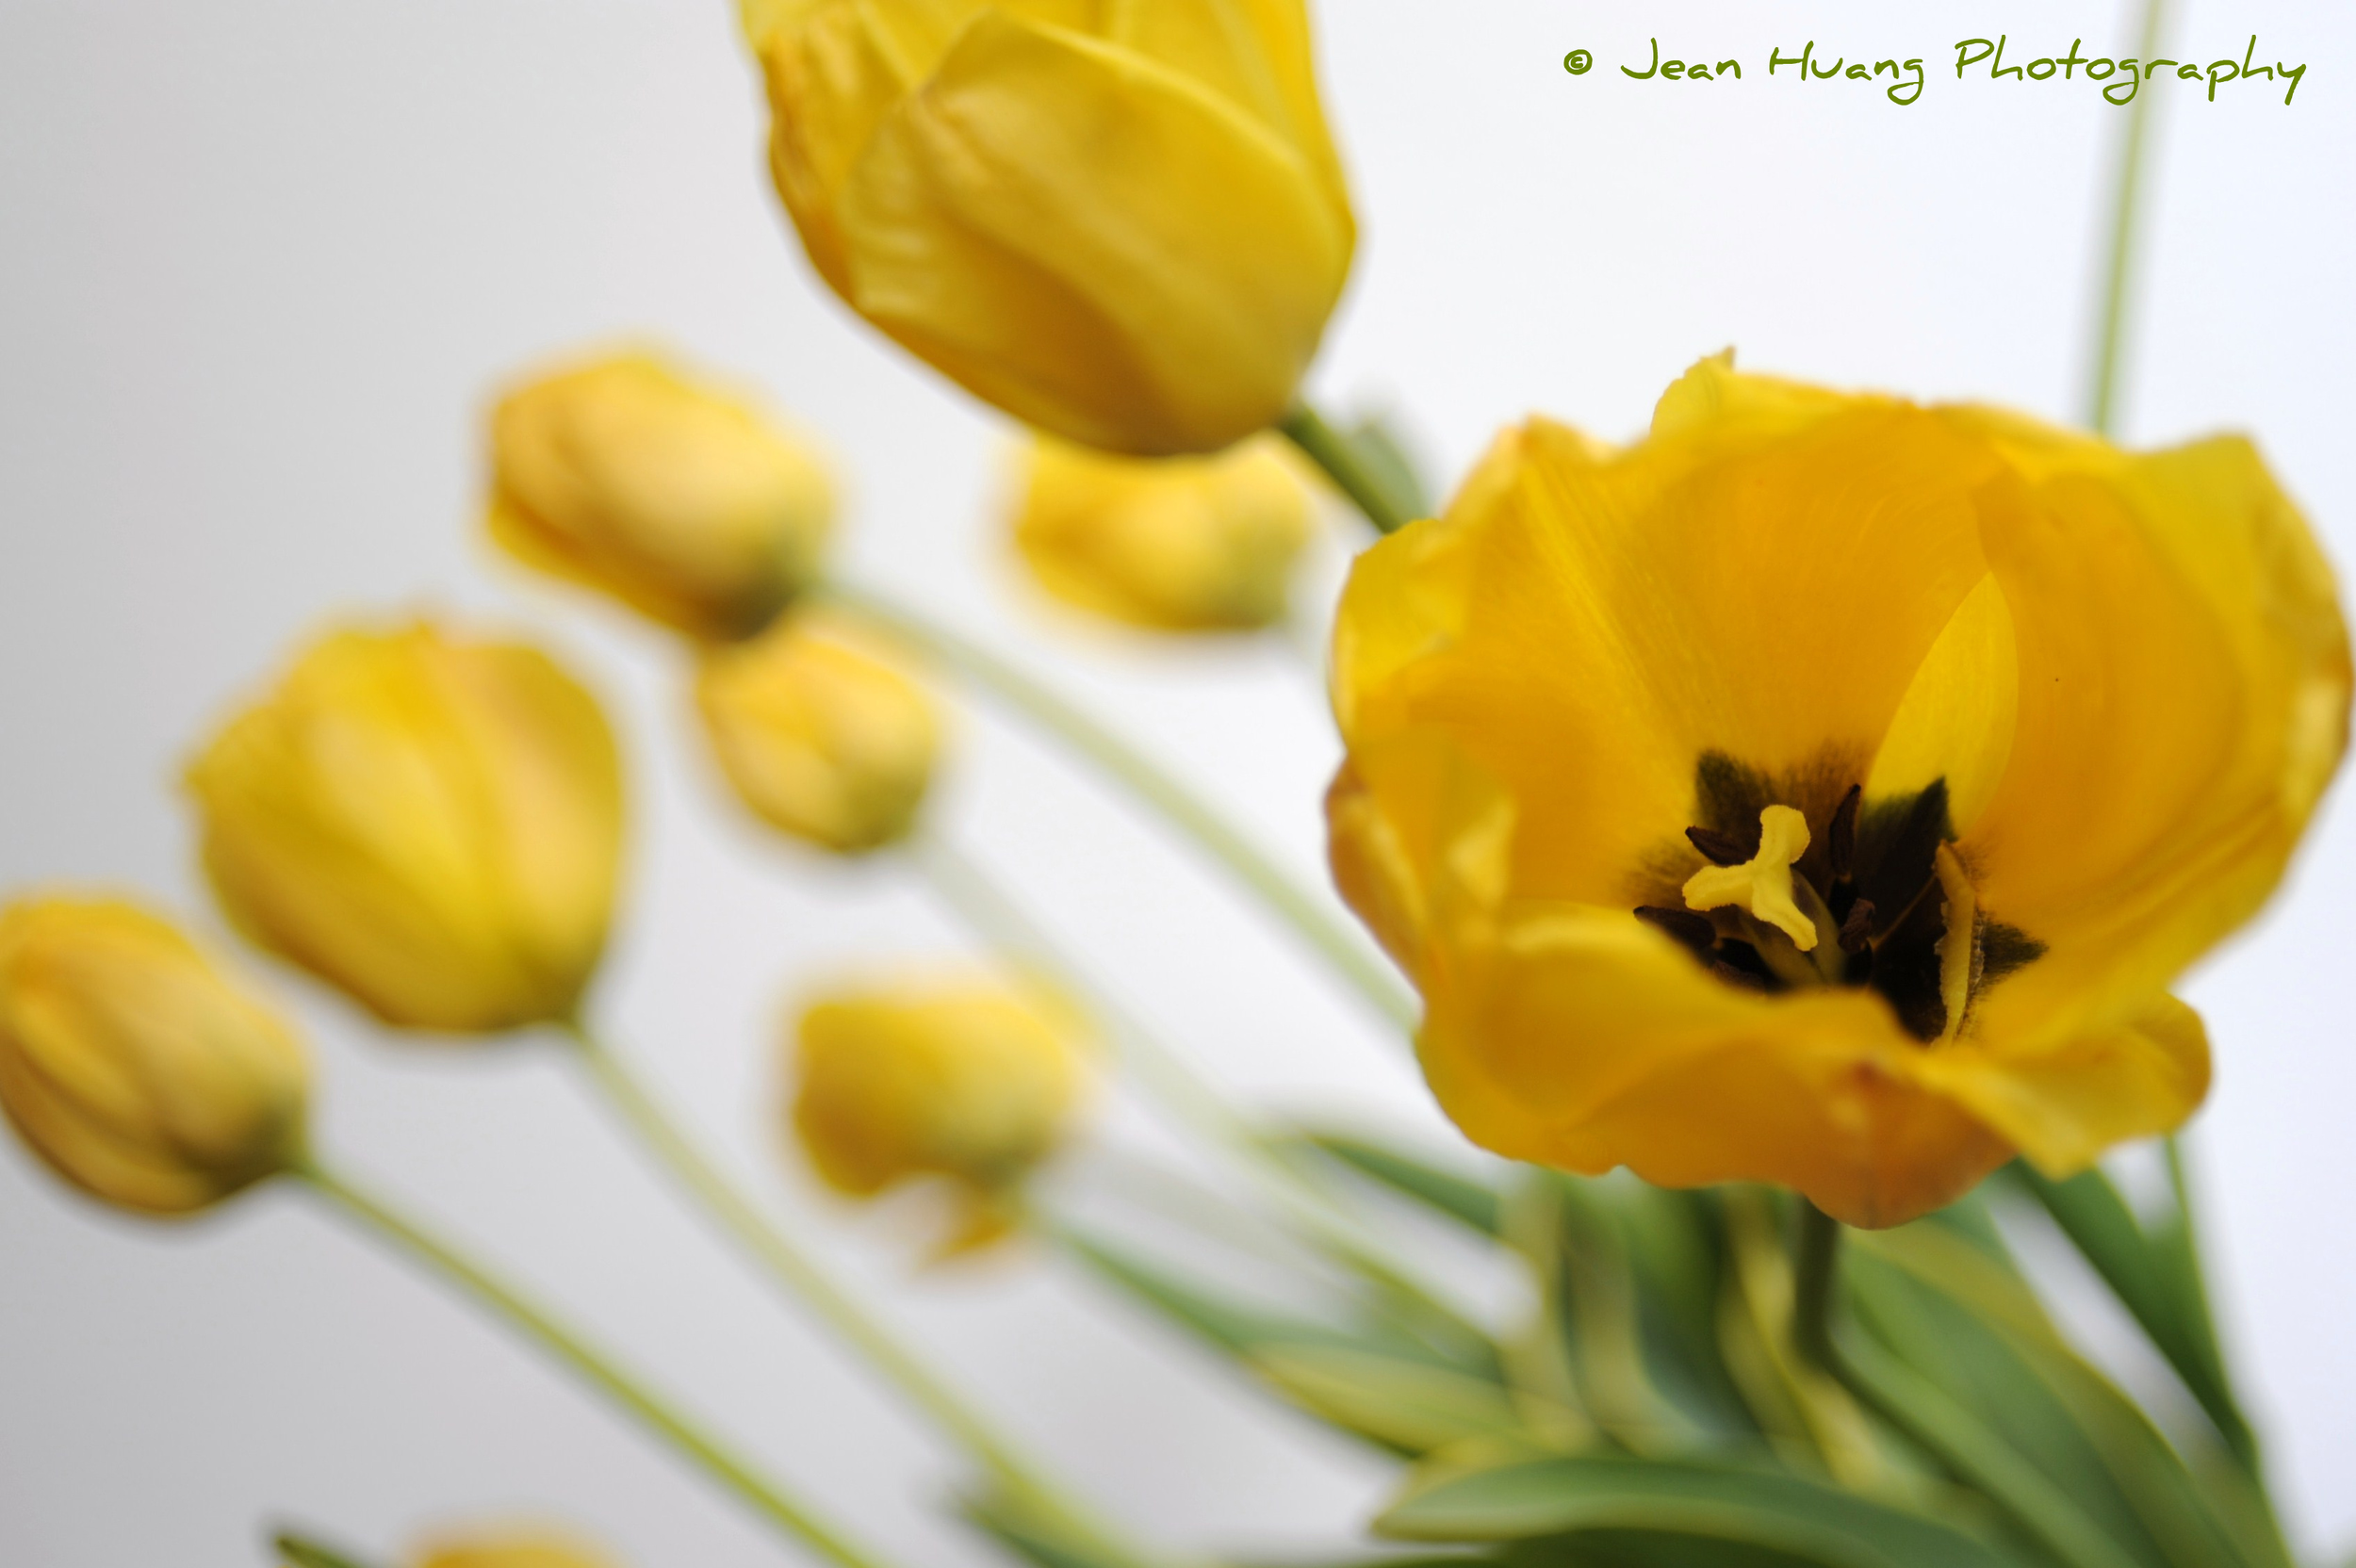 Jean Huang Photography - © Jean (Jiaying) Huang, All Rights Reserved